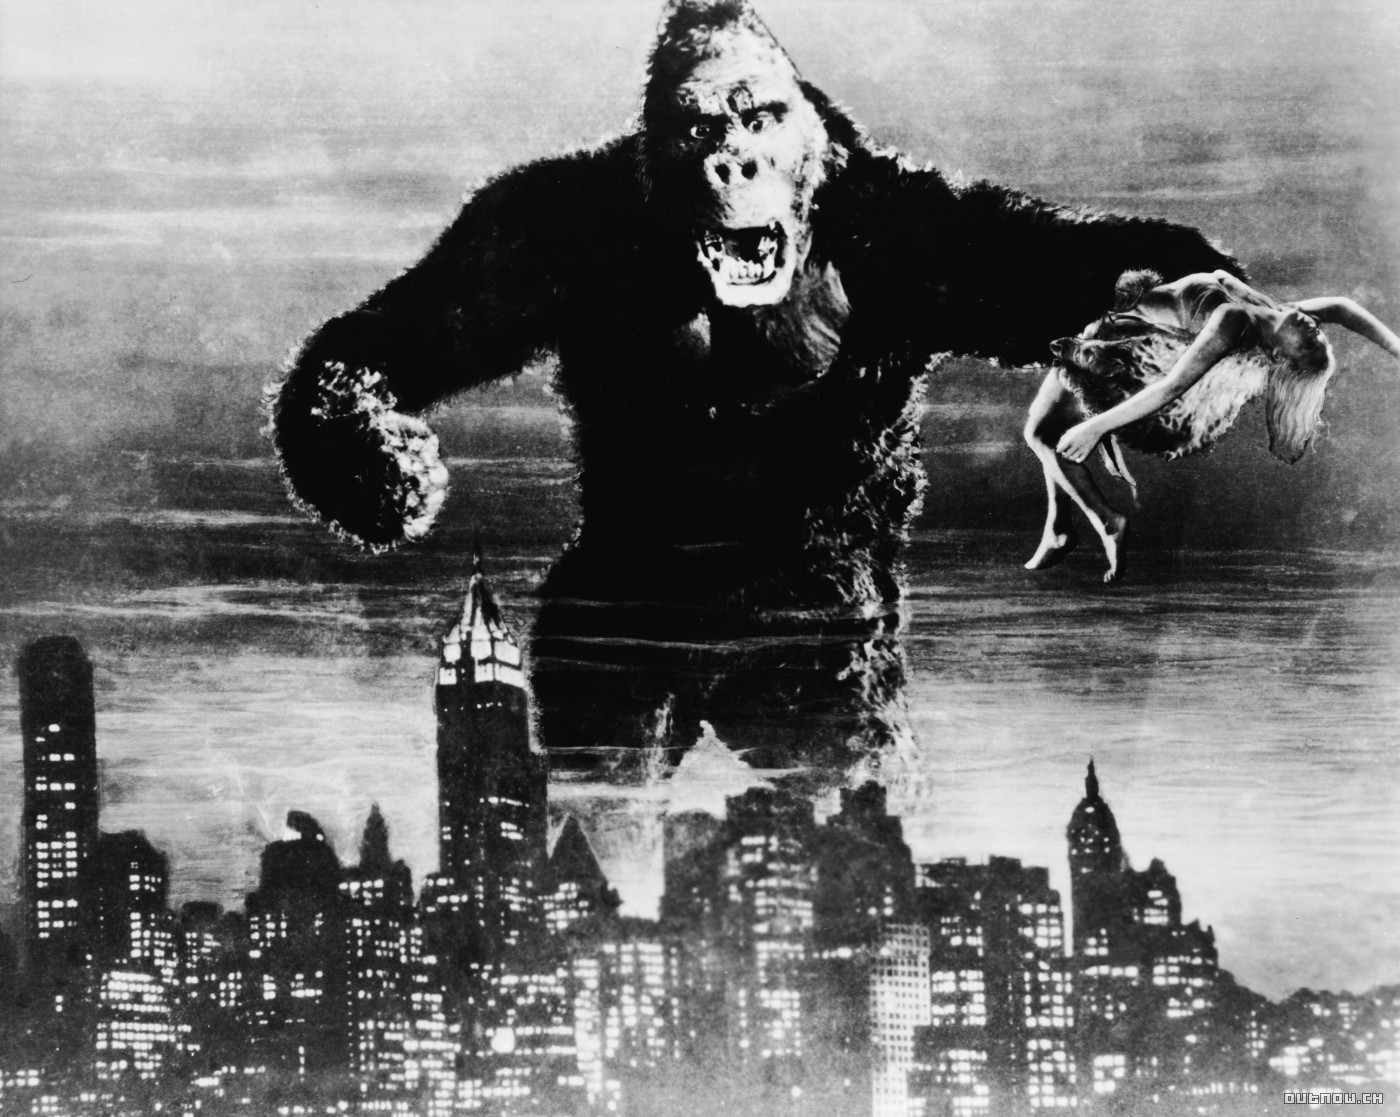 King Kong from 1933